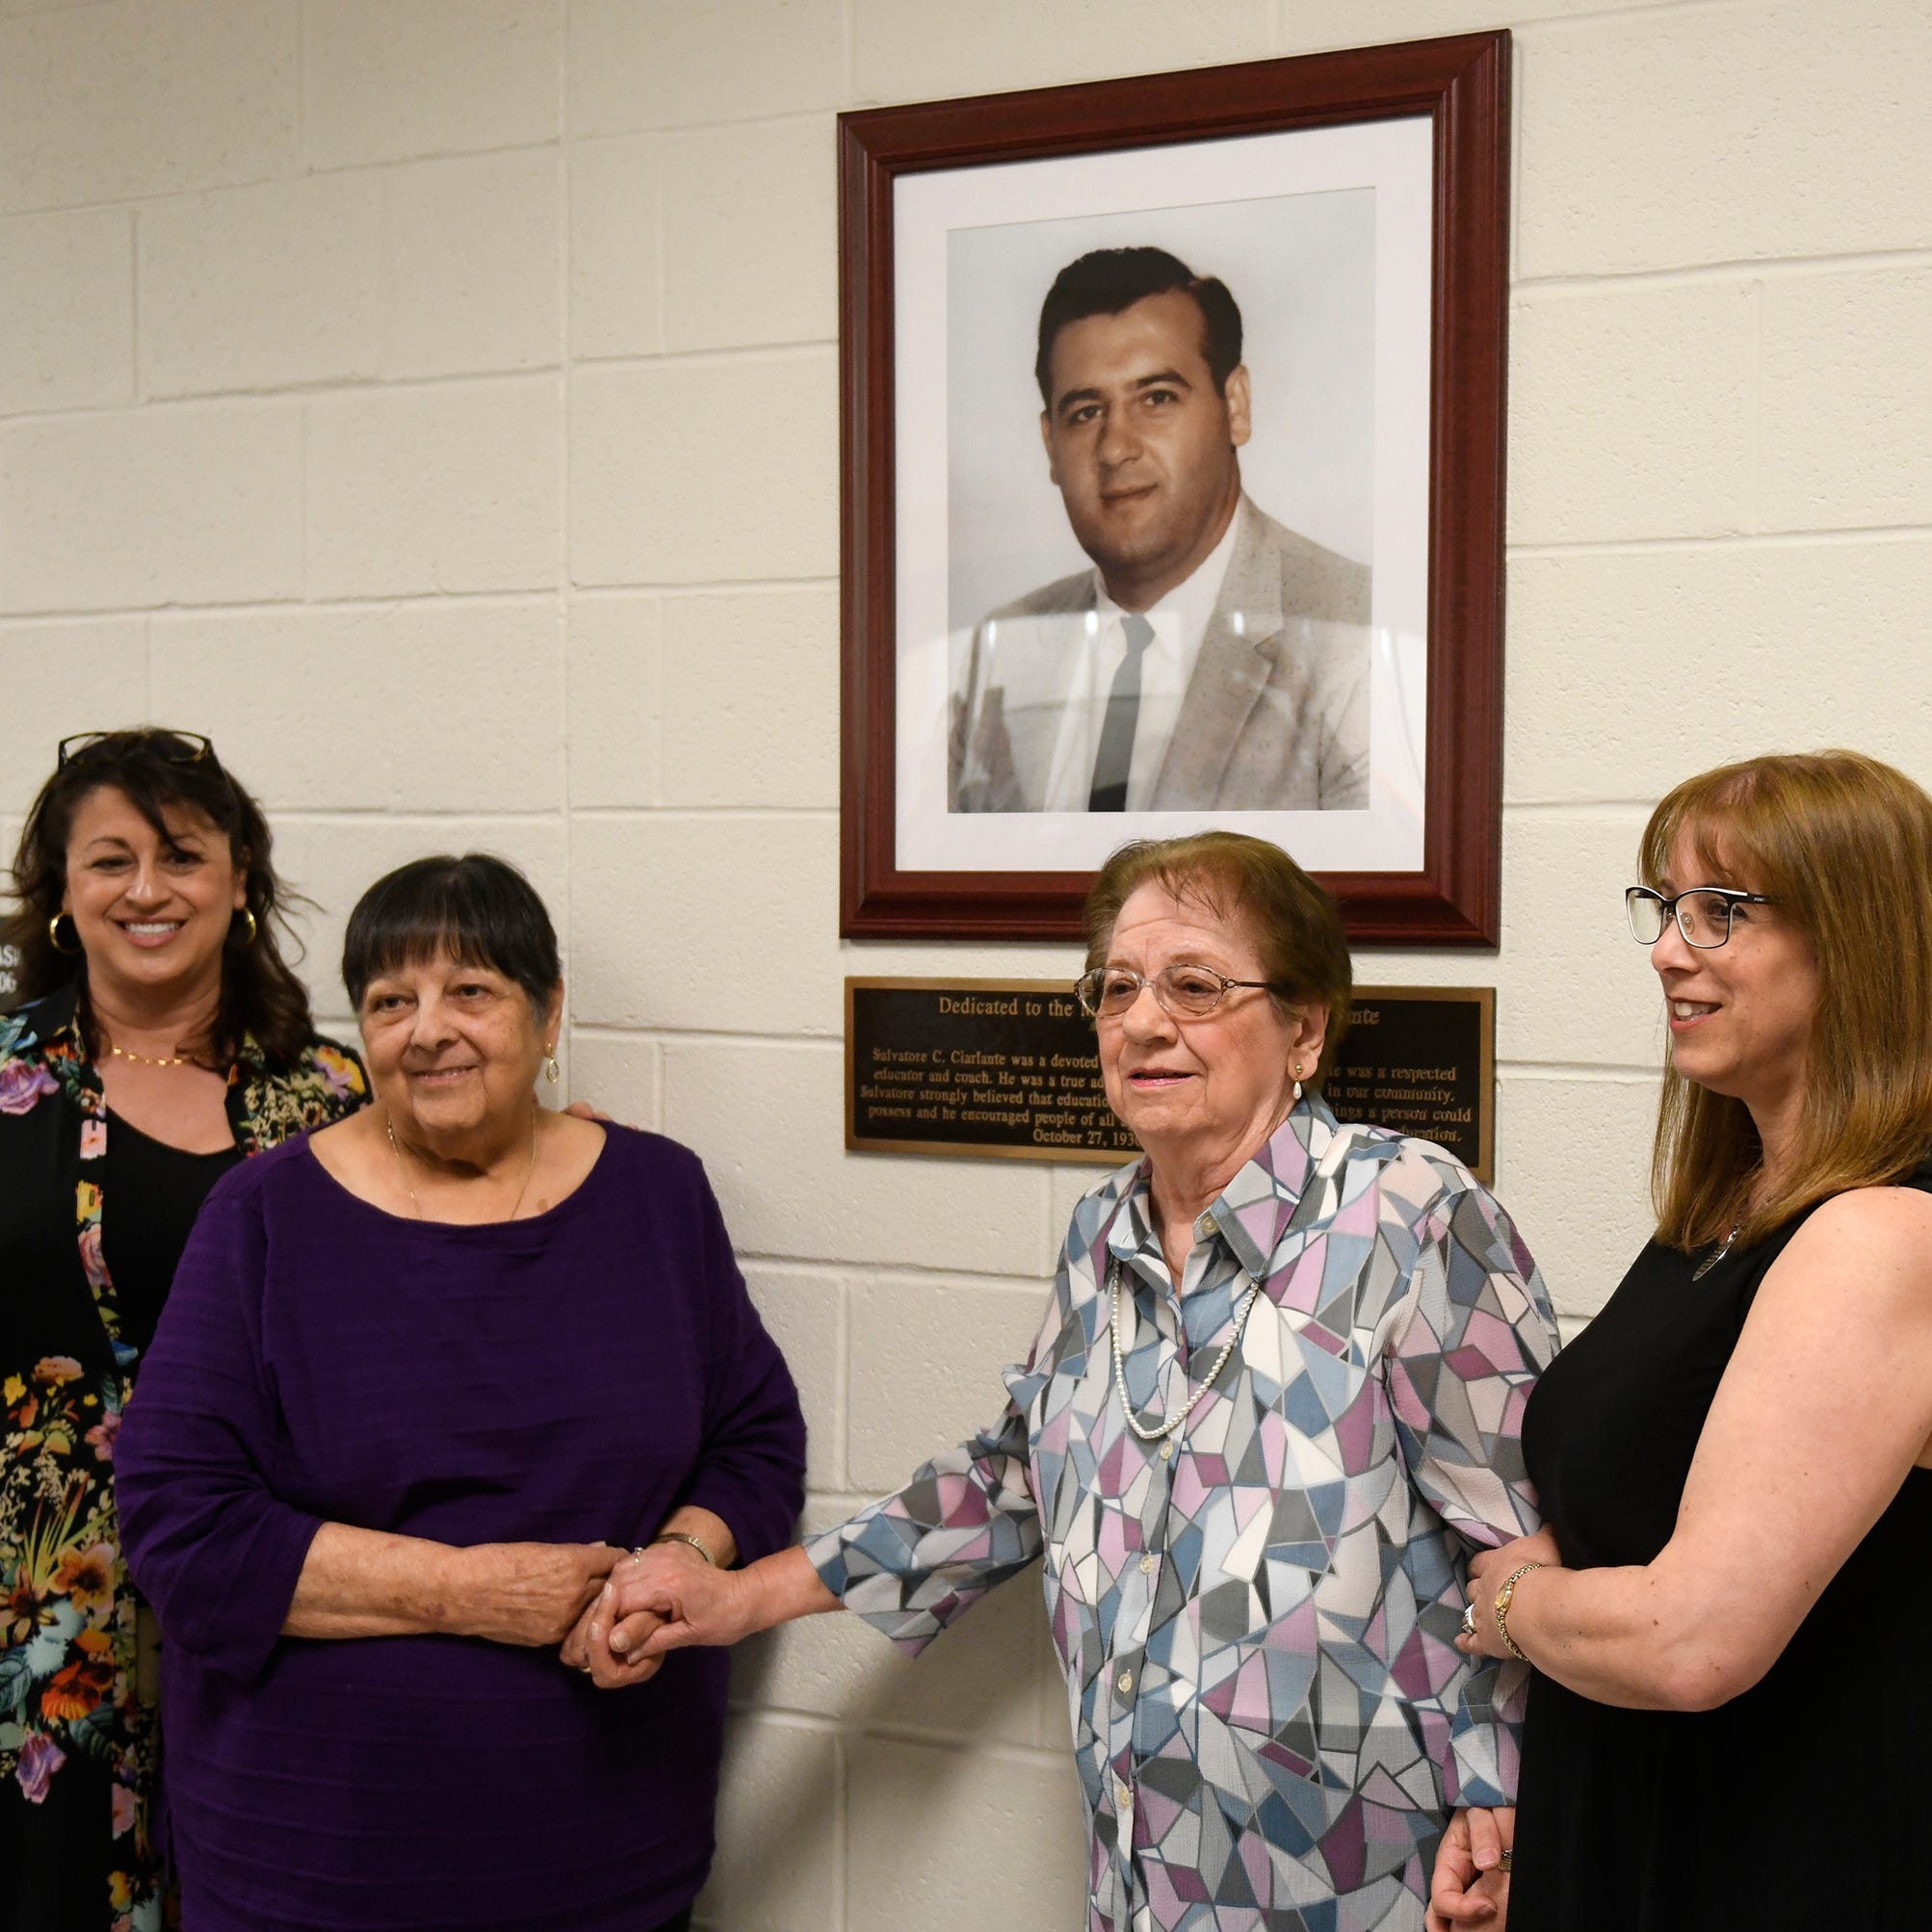 Lerman, Ciarlante honored with dedications at Pilla Middle School